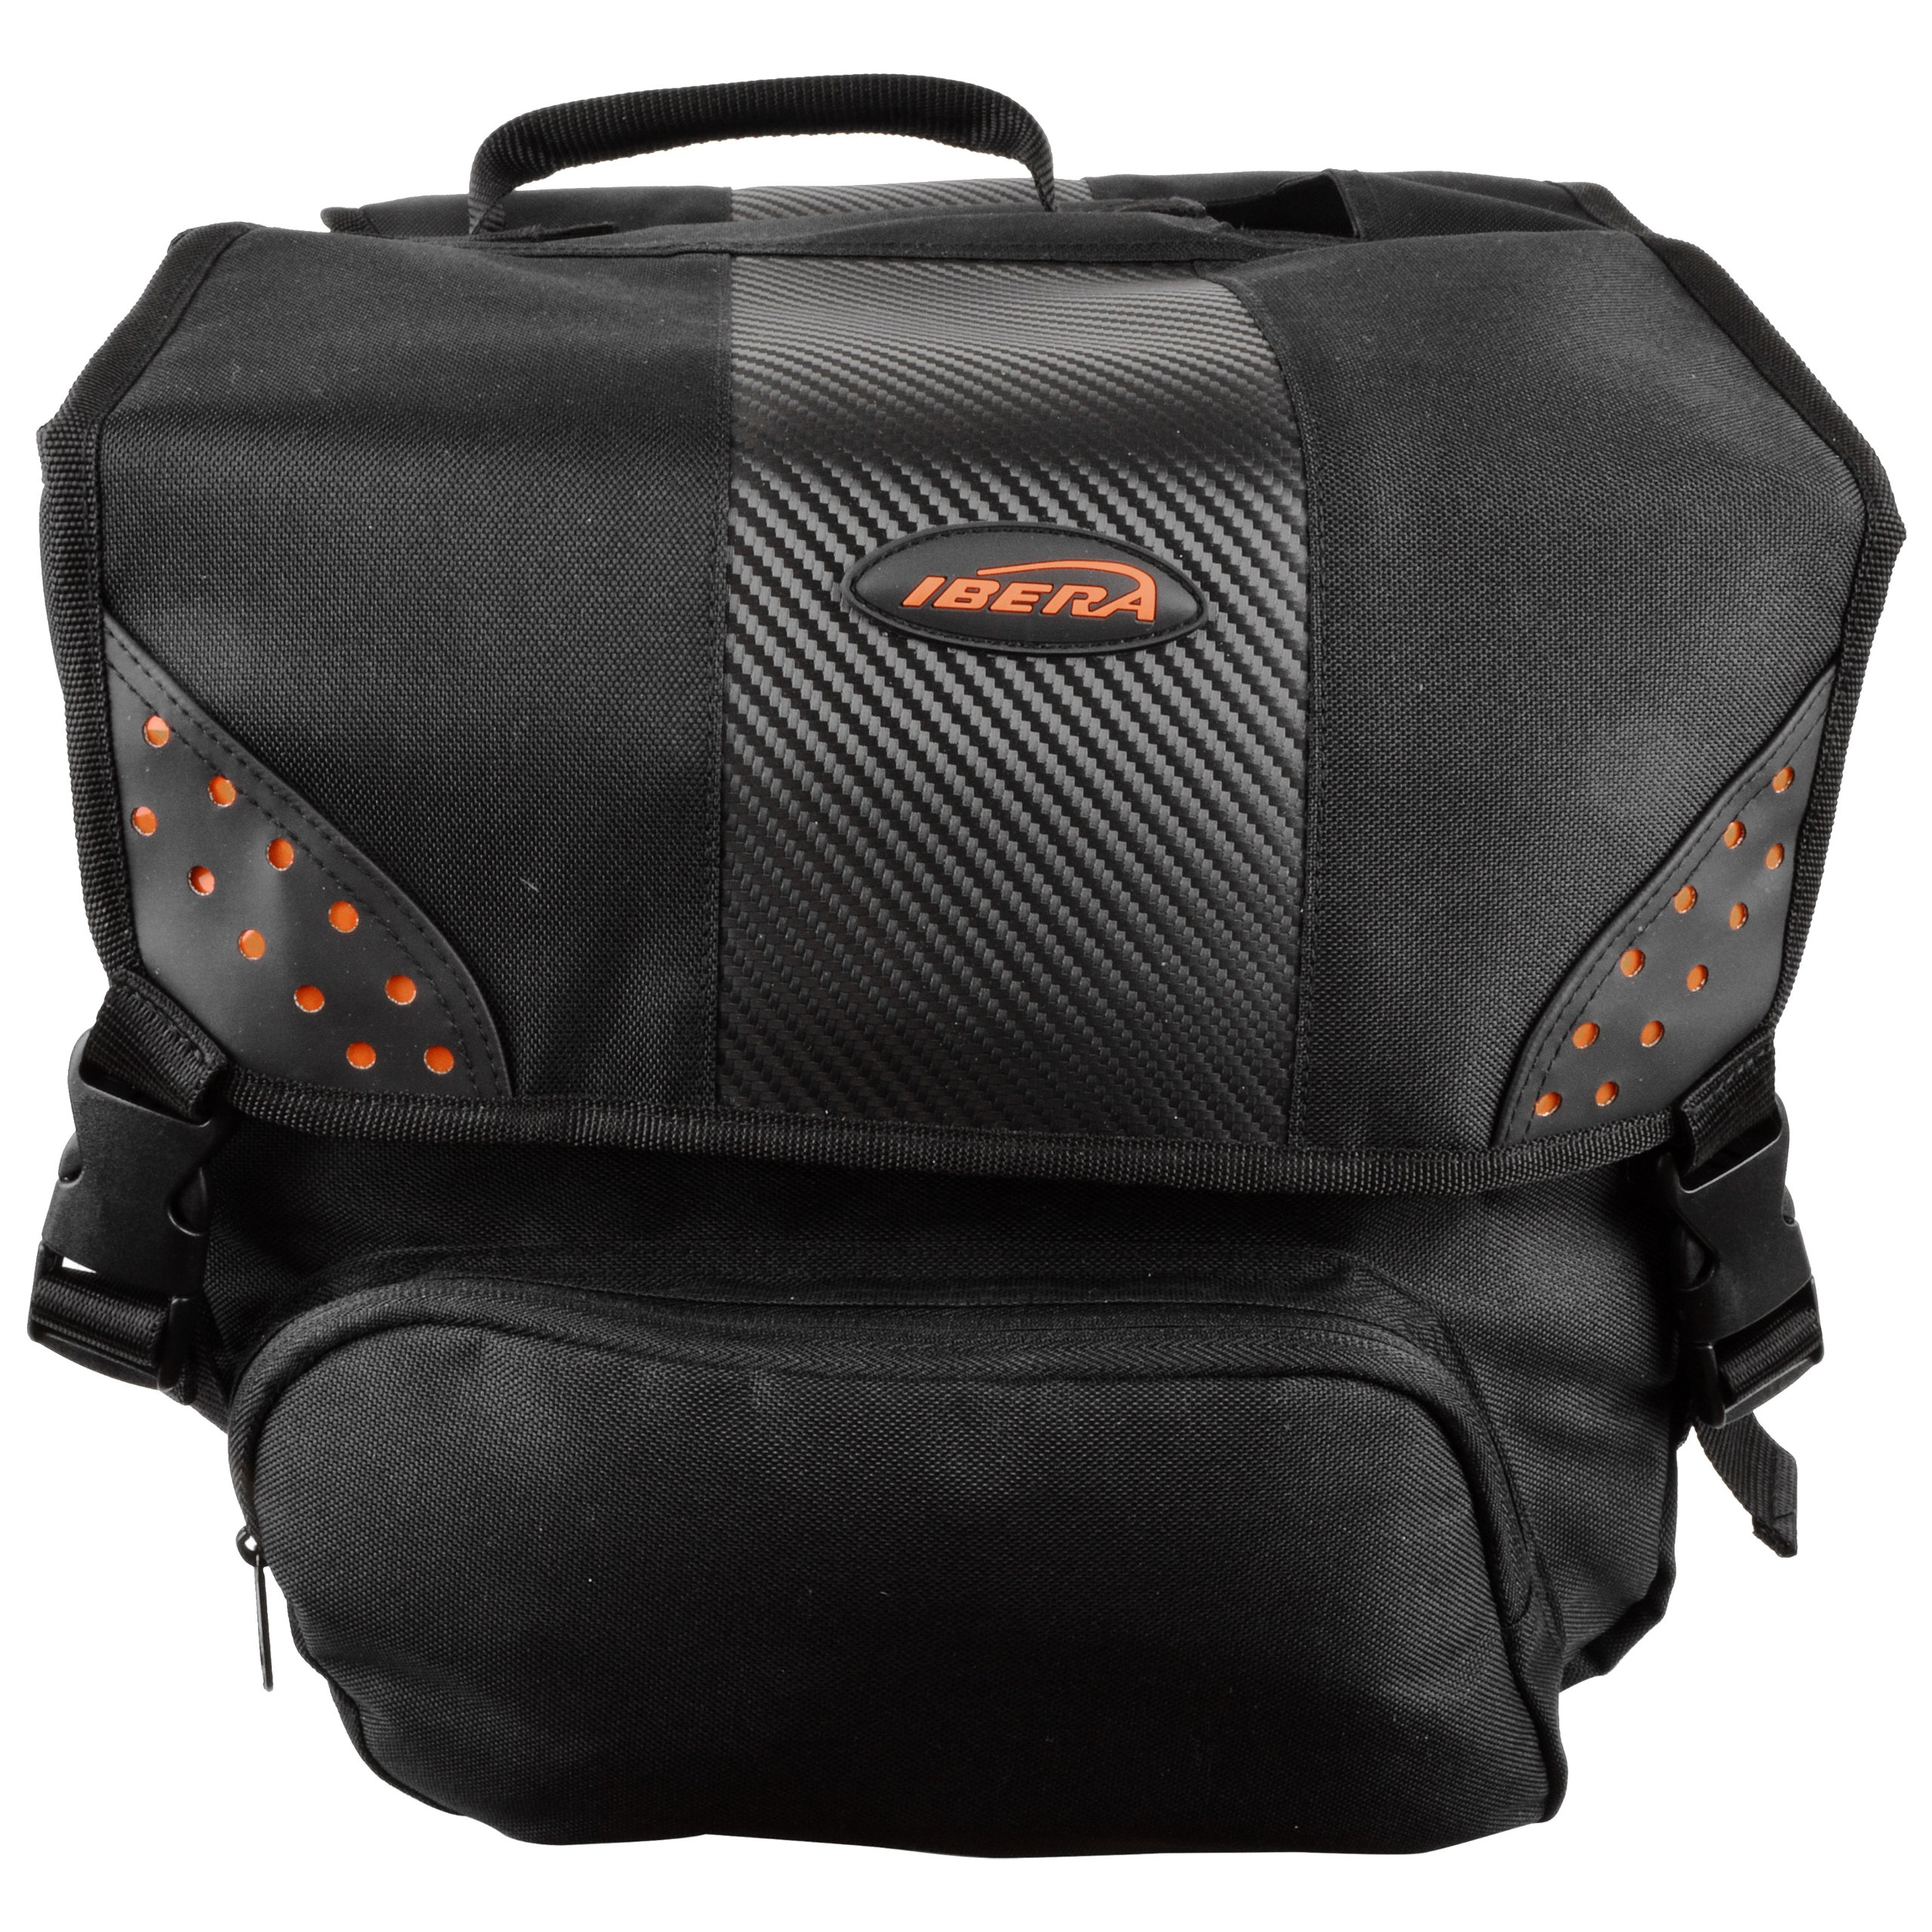 Ibera Bicycle Side-Mounting Pannier Set, Bike Panniers with Multi-Compartments, Slit on Top to Mount on Smaller Racks  by Ibera (Image #3)